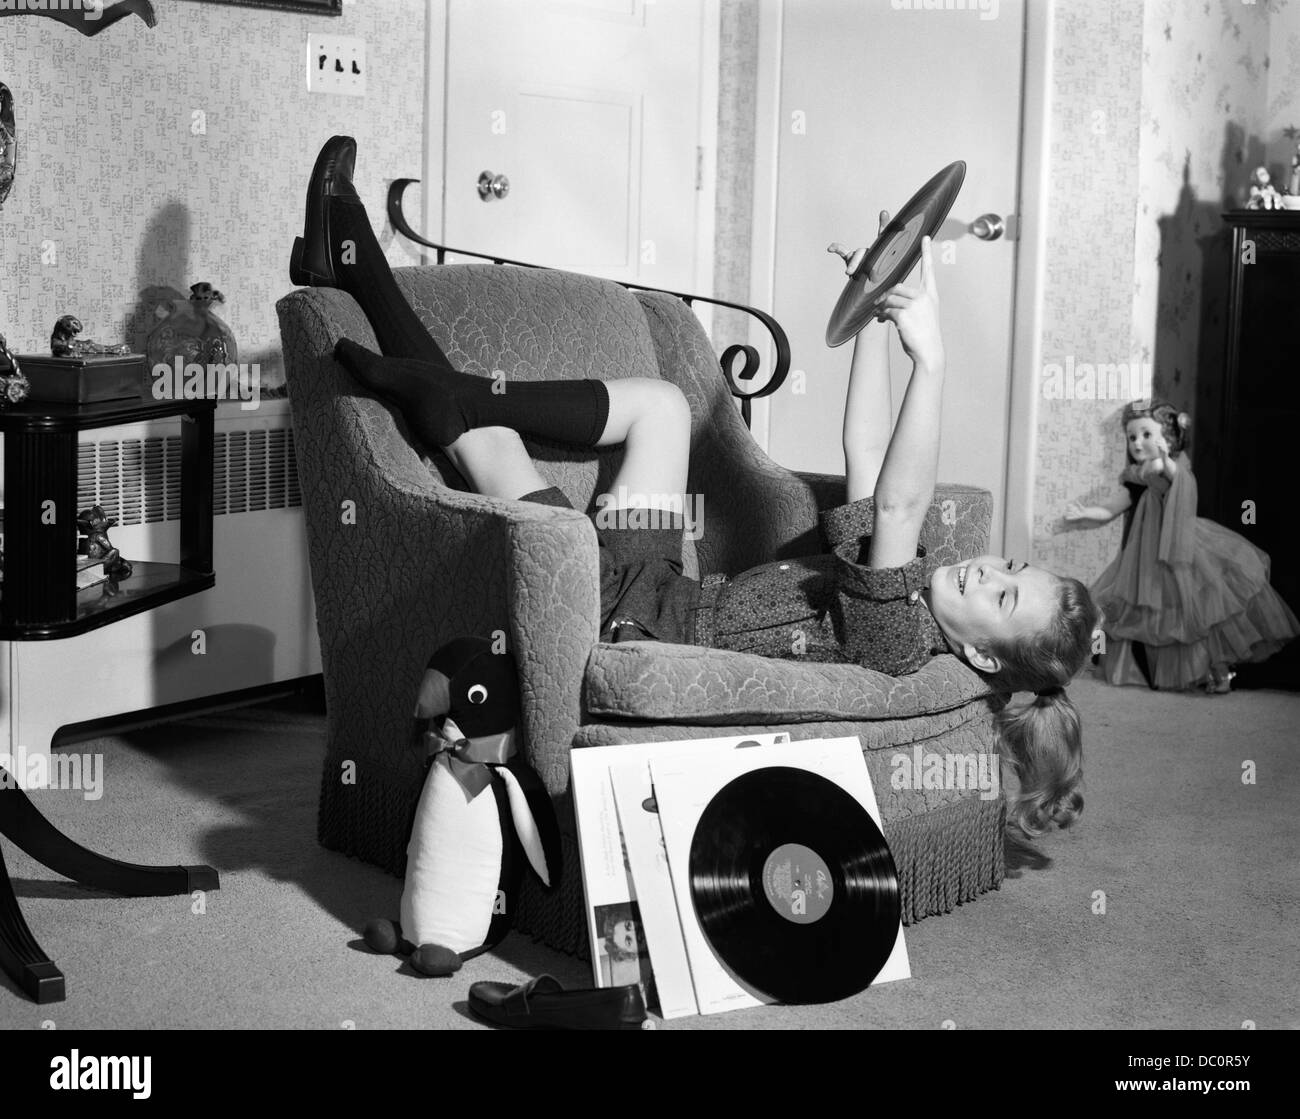 1950s 1960s Teenage Girl Smiling Reclining Upside Down On